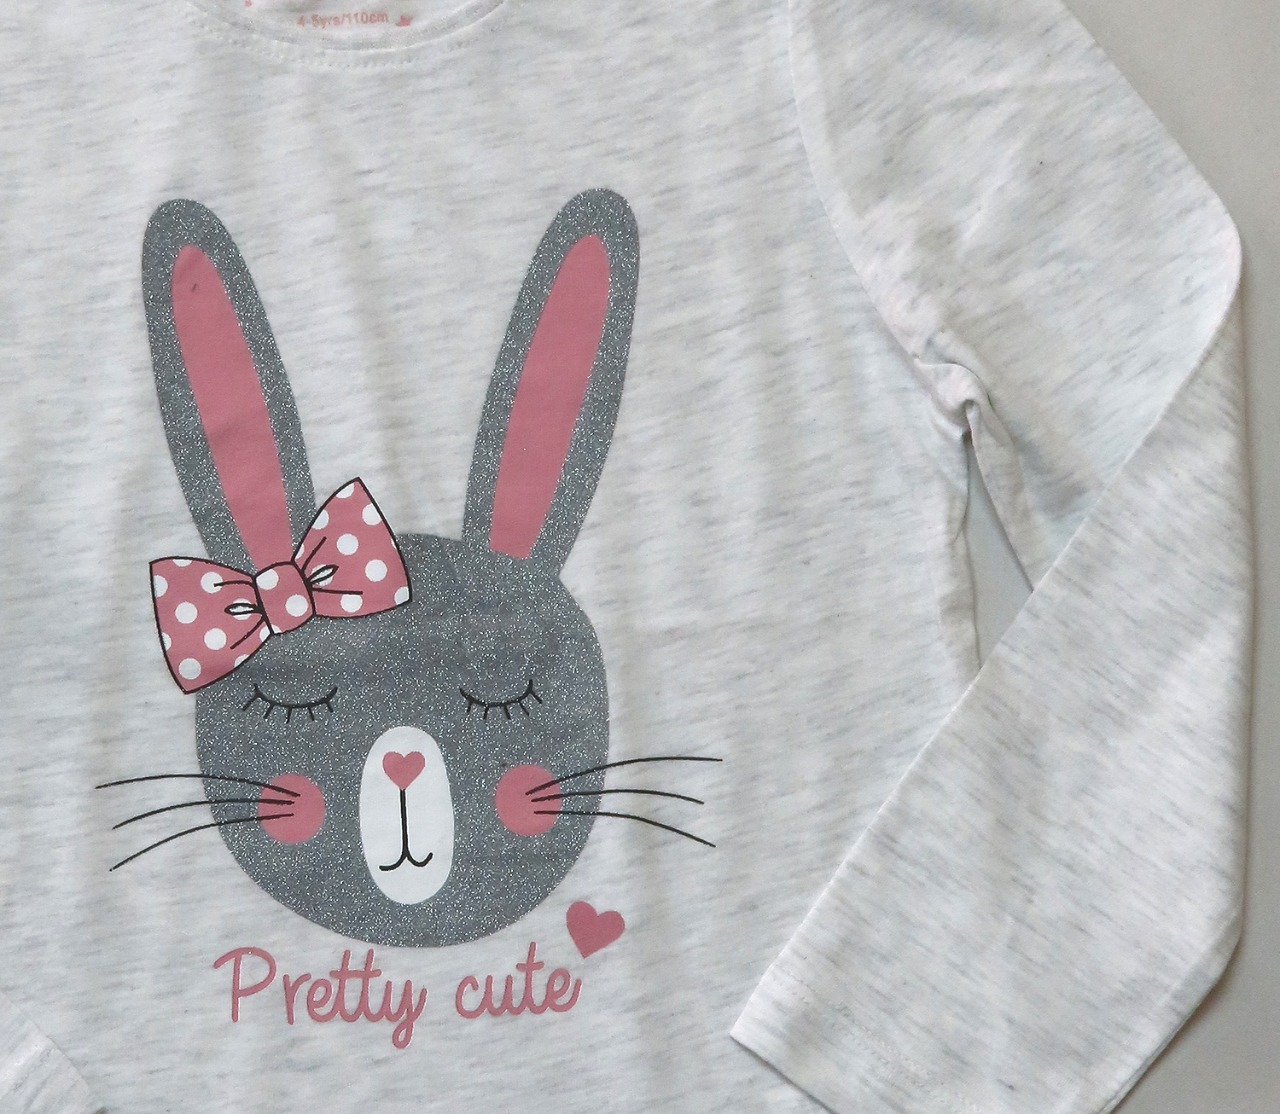 Pretty Cute Girls T Shirt